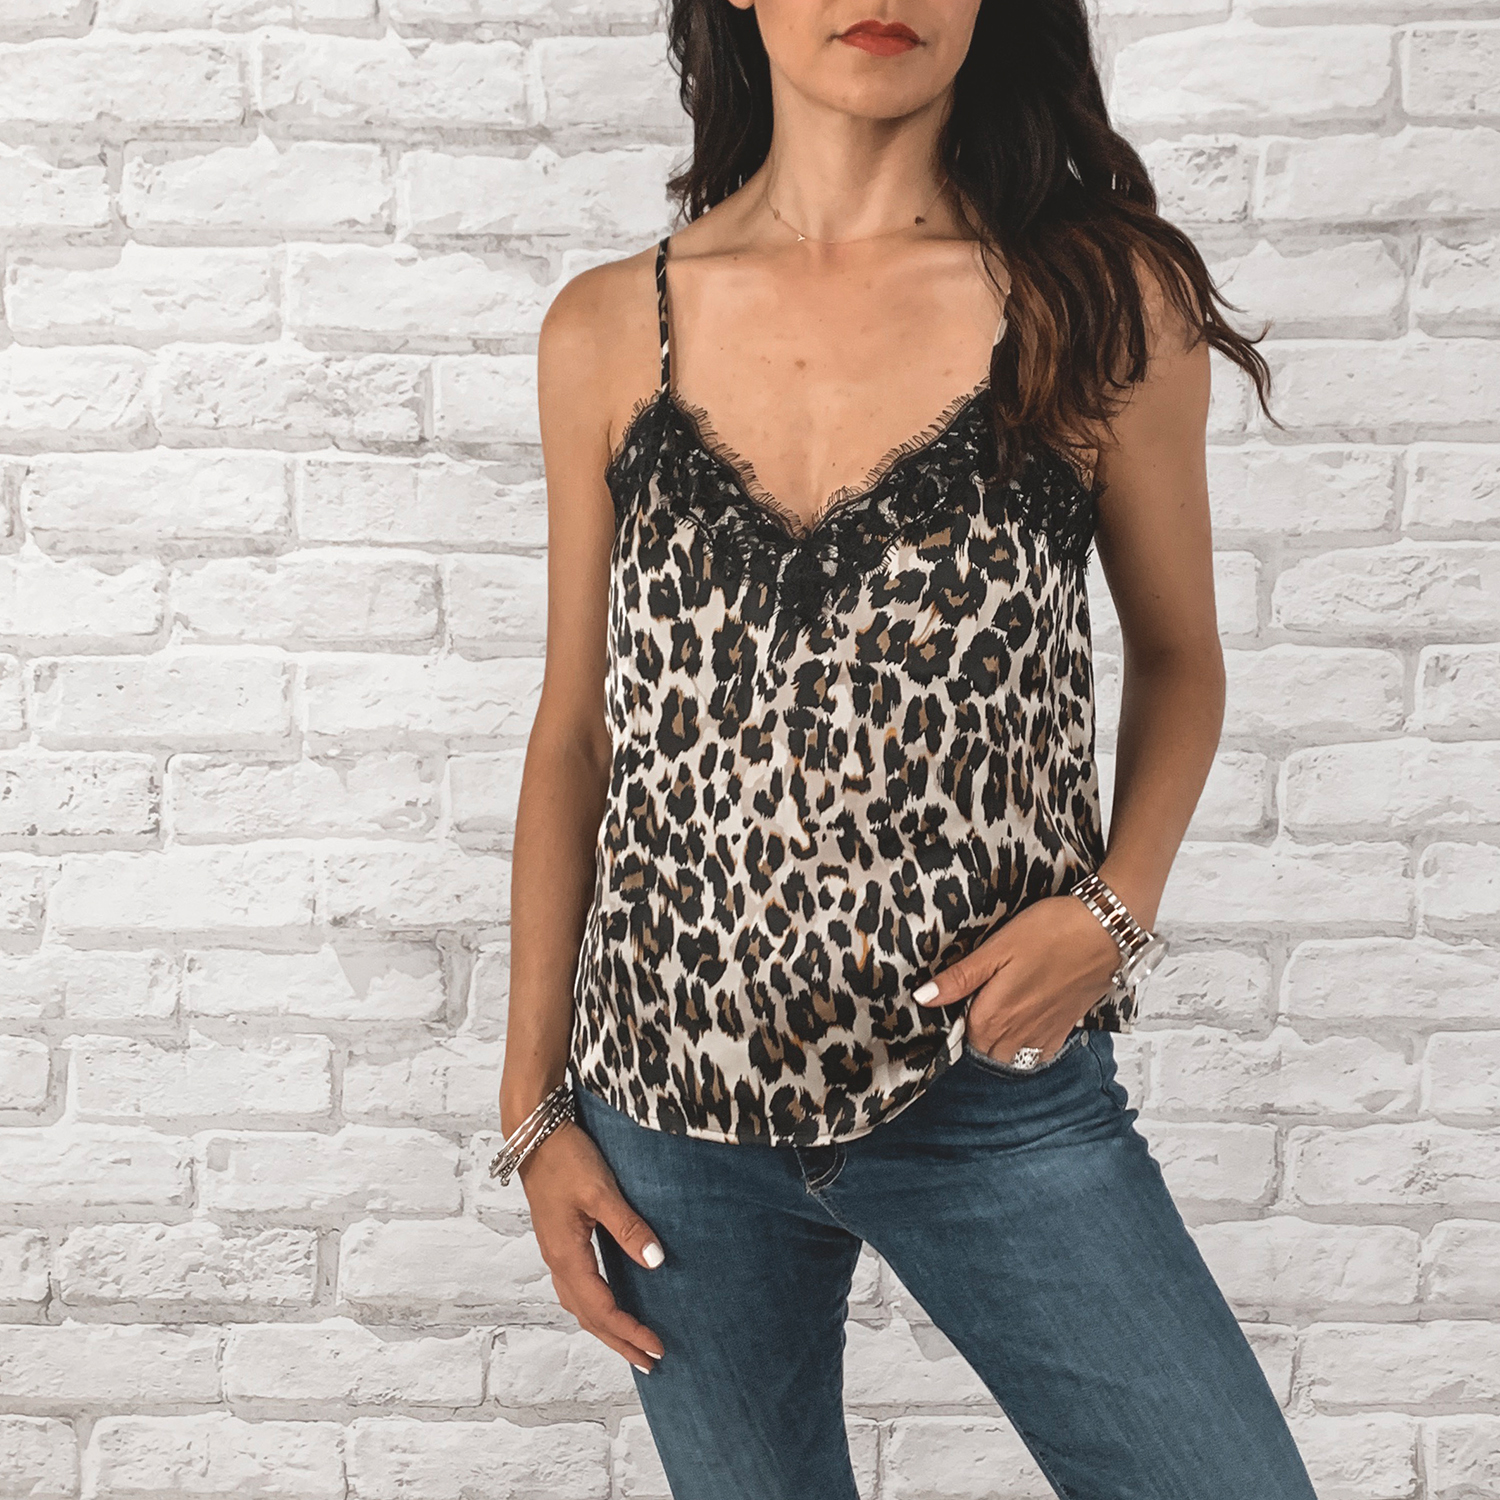 — OUTFIT DETAILS —    BP. Lace Trim Camisole Top    {Anniversary Price: $25.90 | After Sale: $39.00 | Wearing: Small}  |   AG Farrah High Waisted Skinny Jeans      {Anniversary Price: $149.90 | After Sale: $225.00 | Wearing: 26}       — CCW DETAILS —    StealthGearUSA Holster     |   Belt   | Glock 43